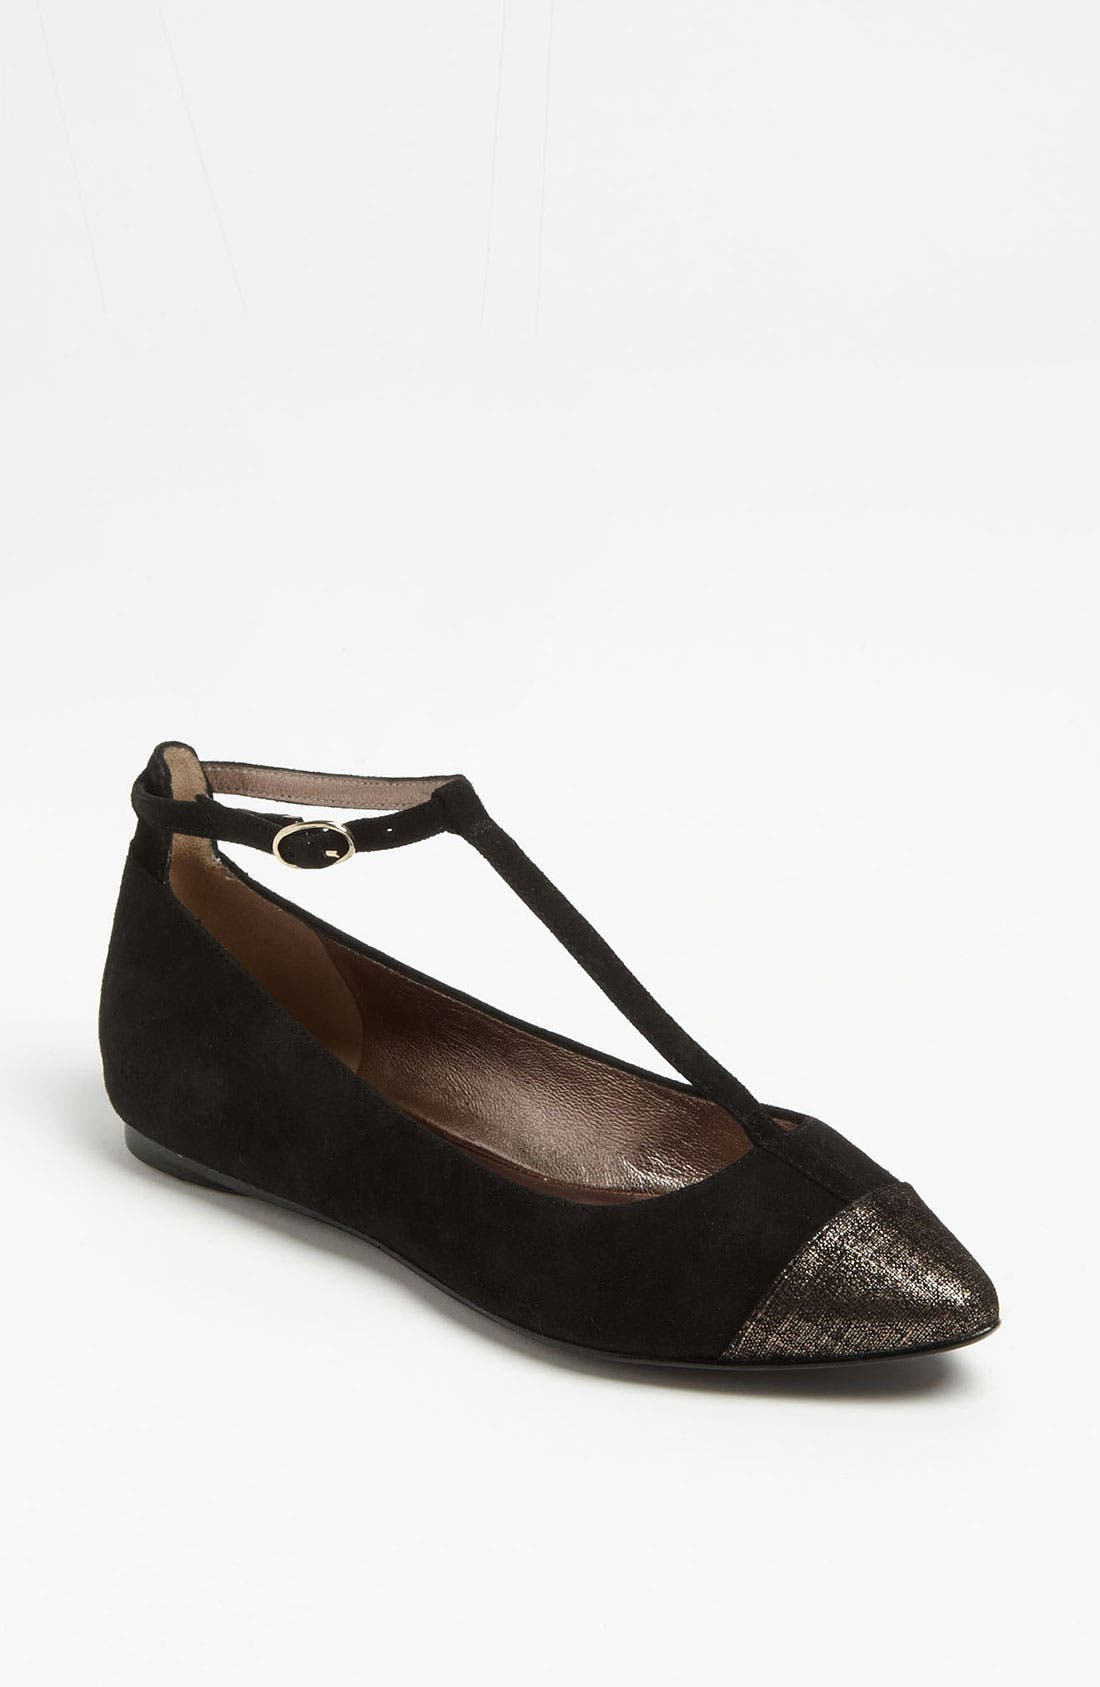 Alternate Image 1 Selected - Belle by Sigerson Morrison 'Varda' Flat